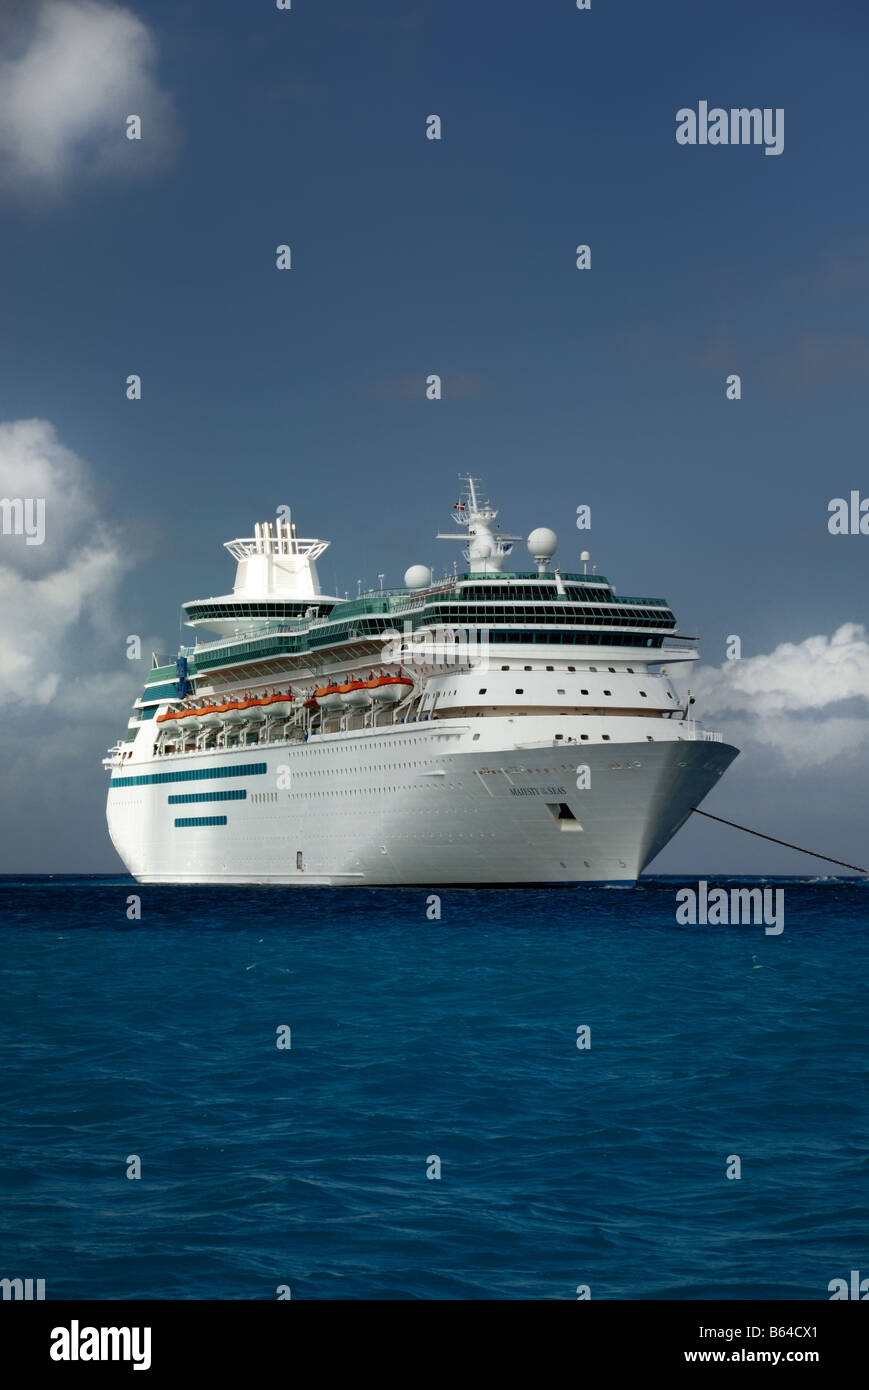 Majesty of the Seas is a Sovereign Class cruise ship owned and operated by Royal Caribbean International. - Stock Image